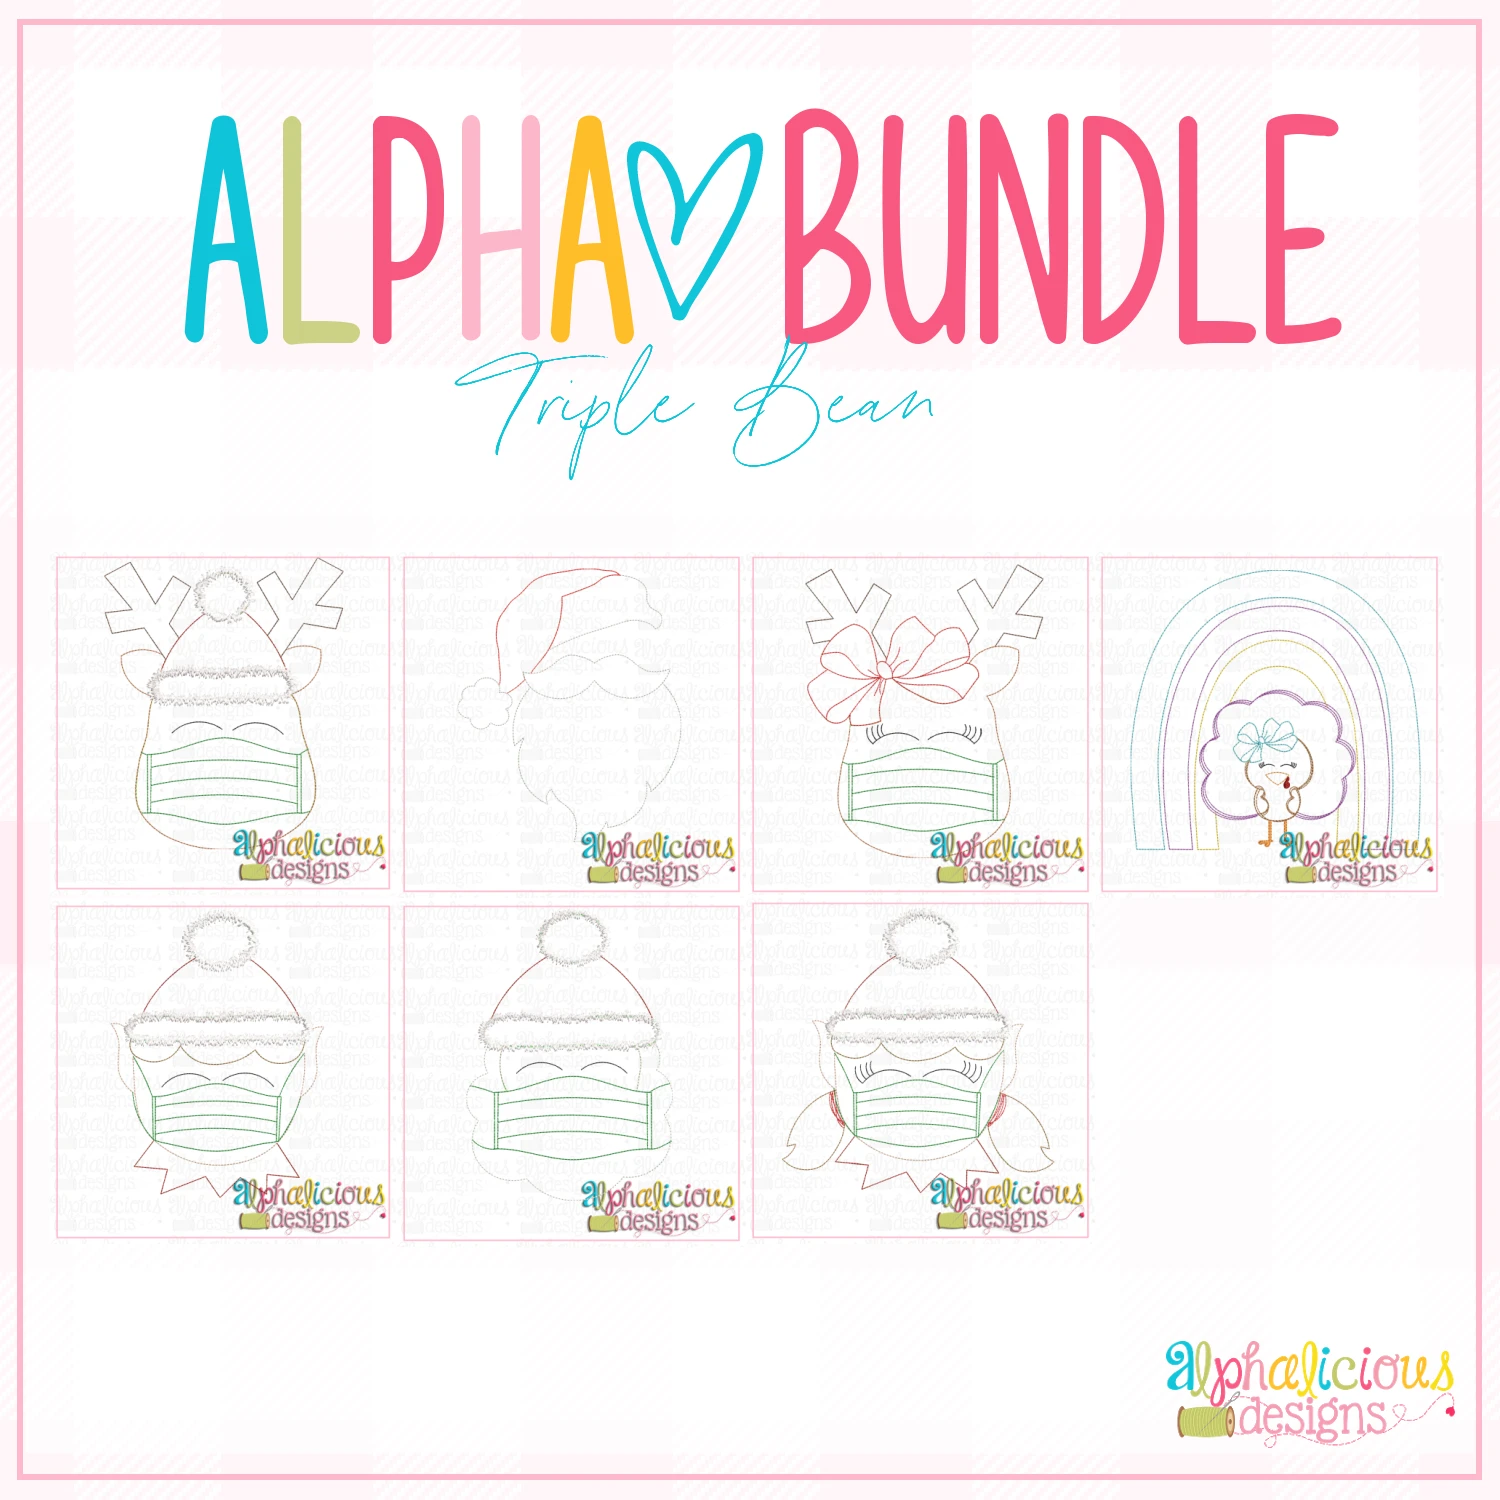 ALPHA BUNDLE-10-23-20 Release-Triple Bean